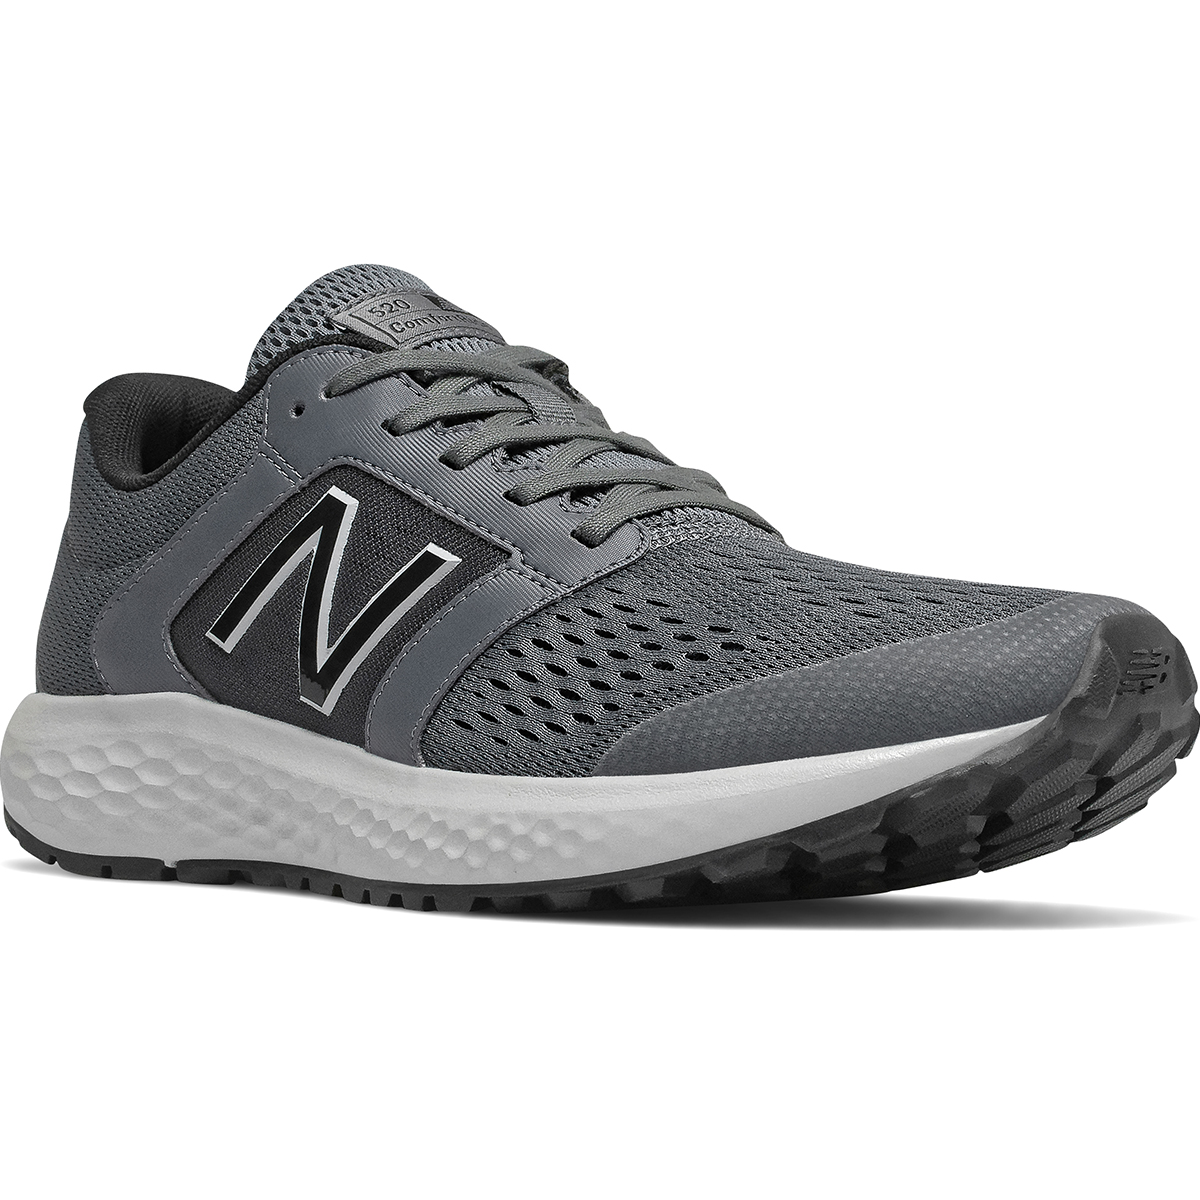 New Balance Men's 520 V5 Running Shoe, Wide - Black, 14